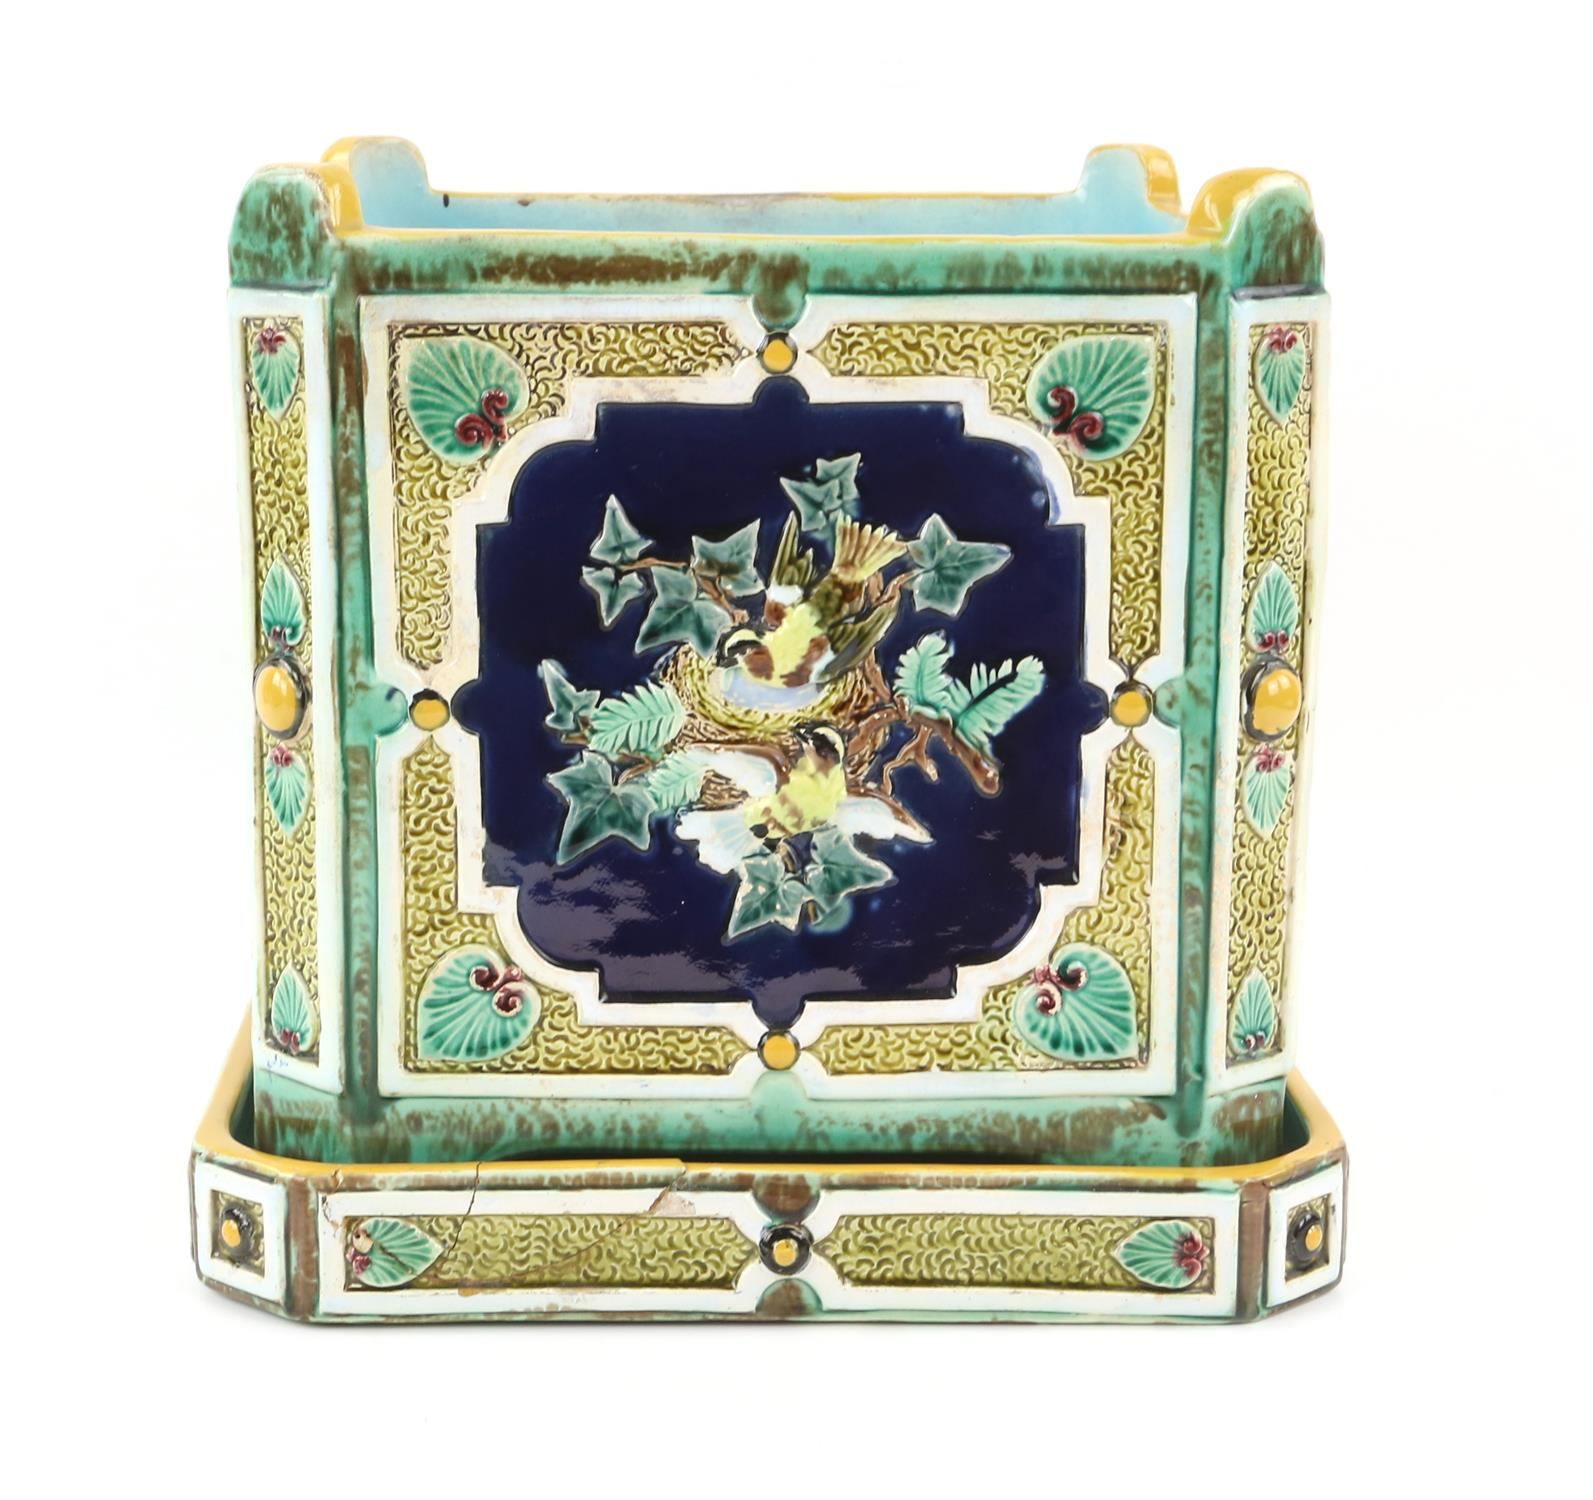 Minton style planter on stand, decorated with pairs of birds on nests. 22cm High, 21.5cm wide, 21. - Image 4 of 10